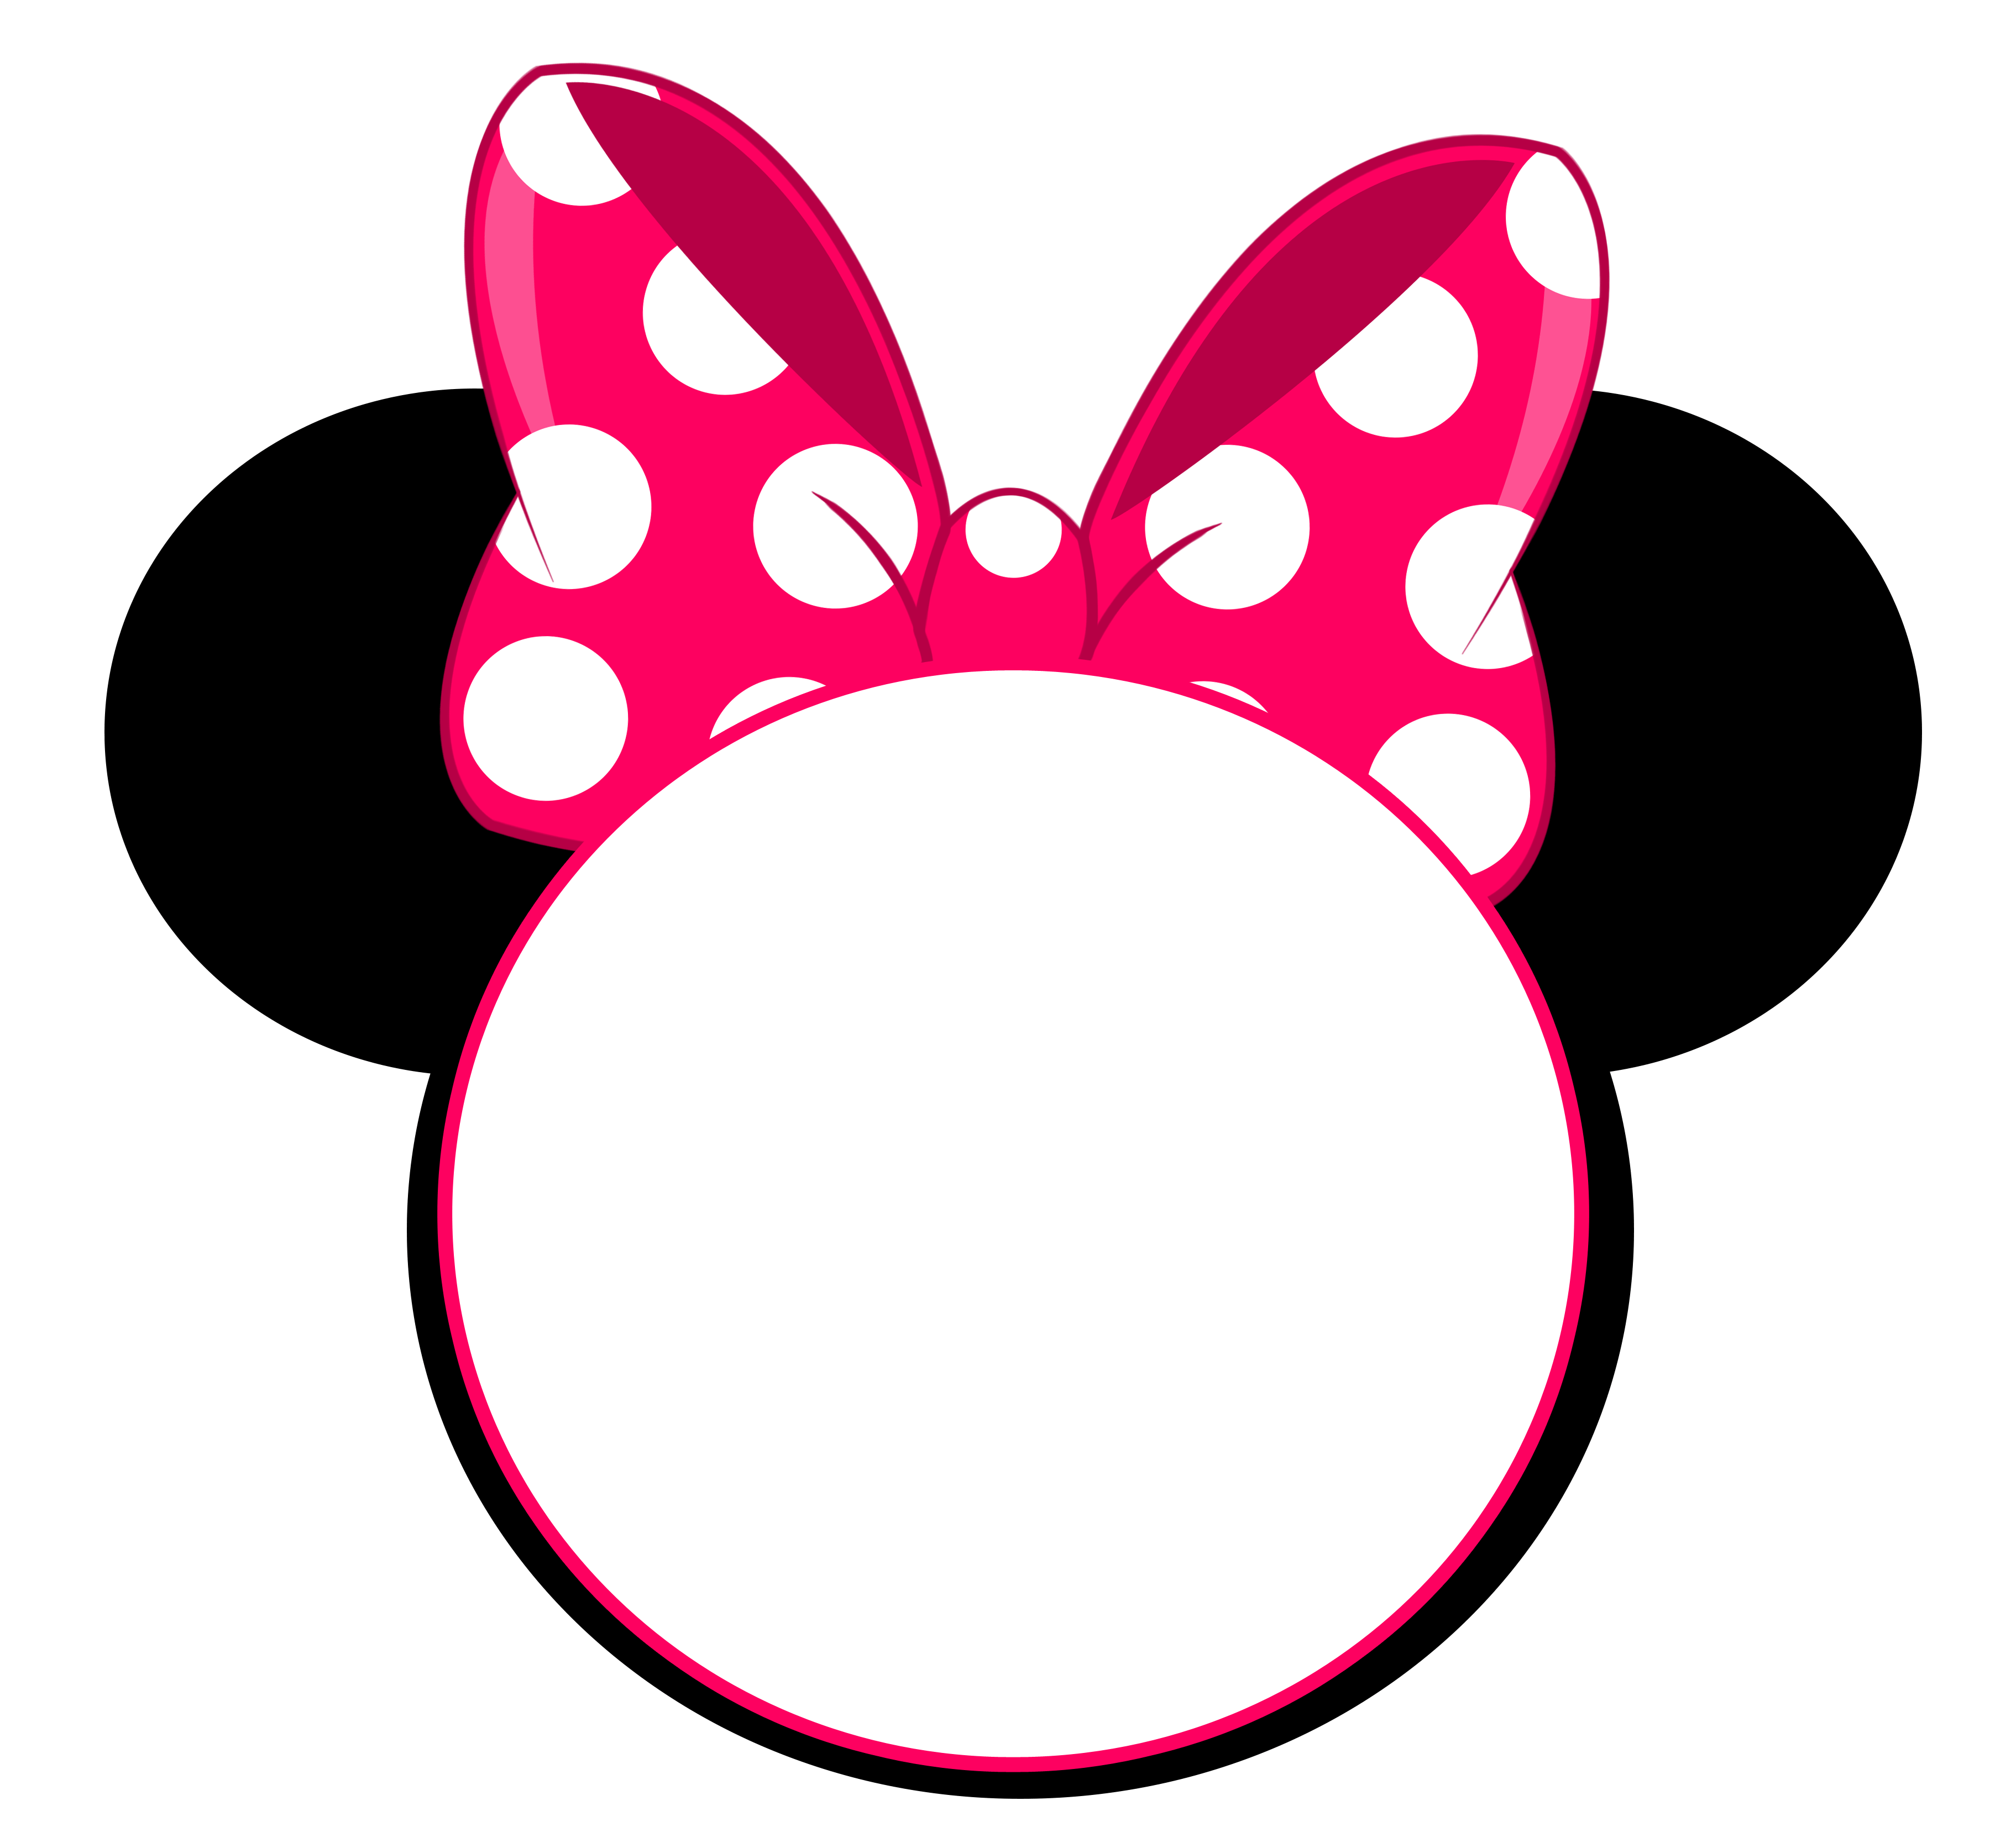 Minnie mouse head outline clipart picture free download Minnie head outline clipart images gallery for free download ... picture free download